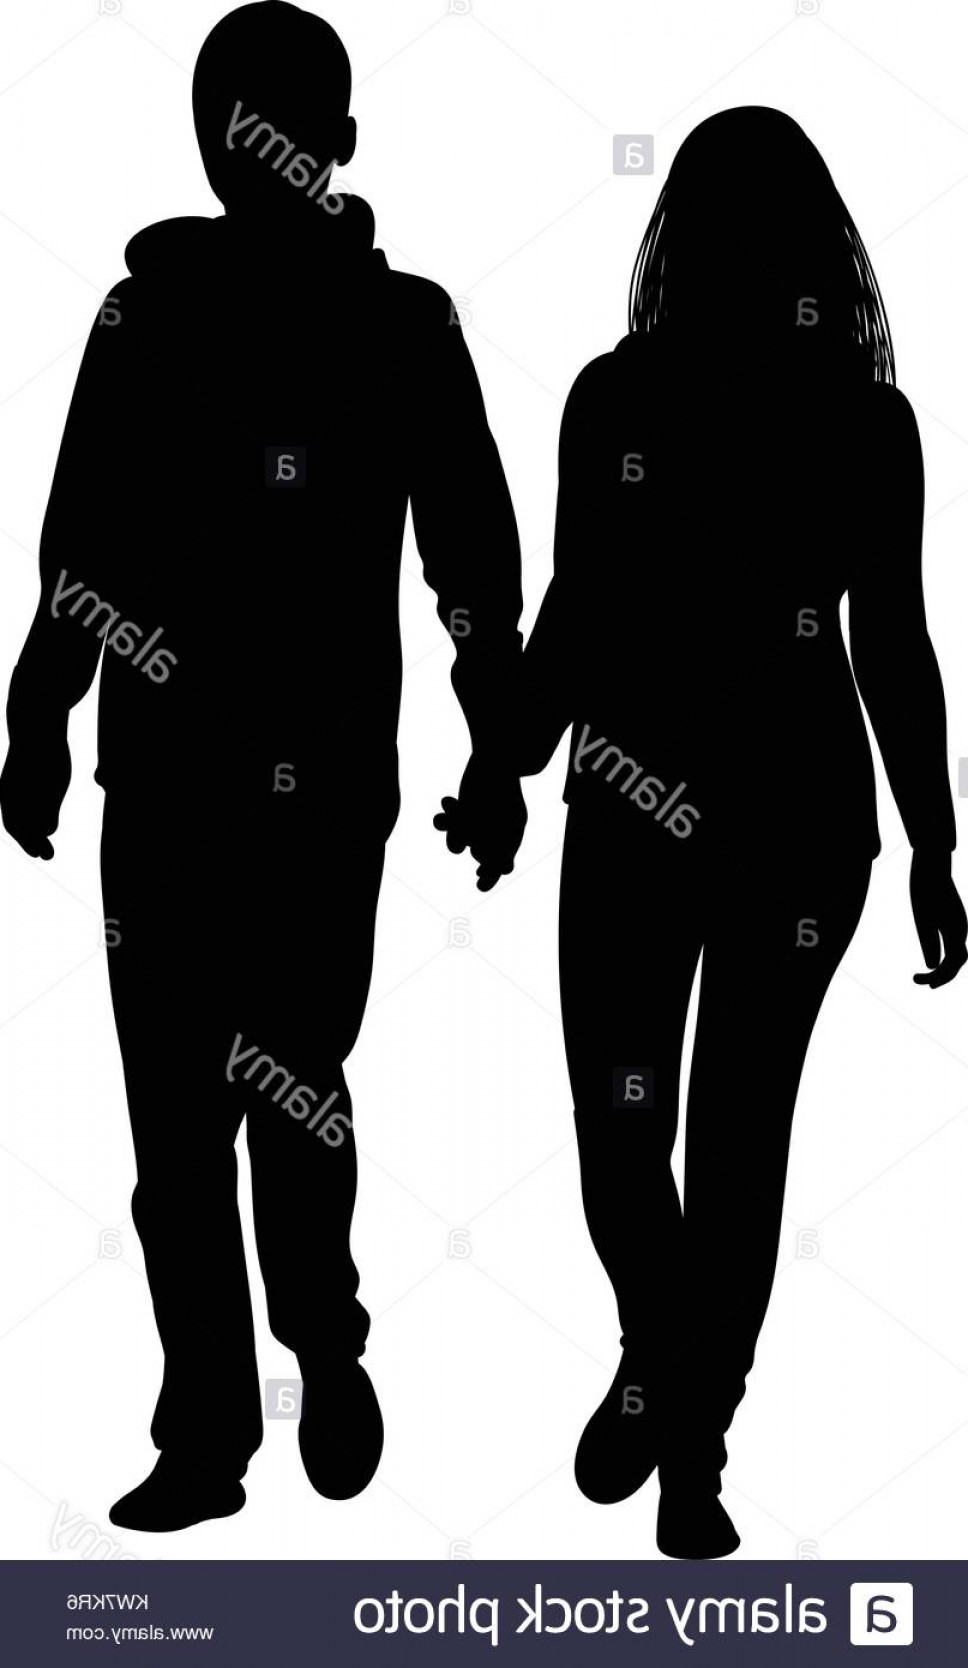 Male Silhouette Vector Art: Stock Photo Silhouette Of A Girl And A Young Man Walking Alongside Hand In Hand